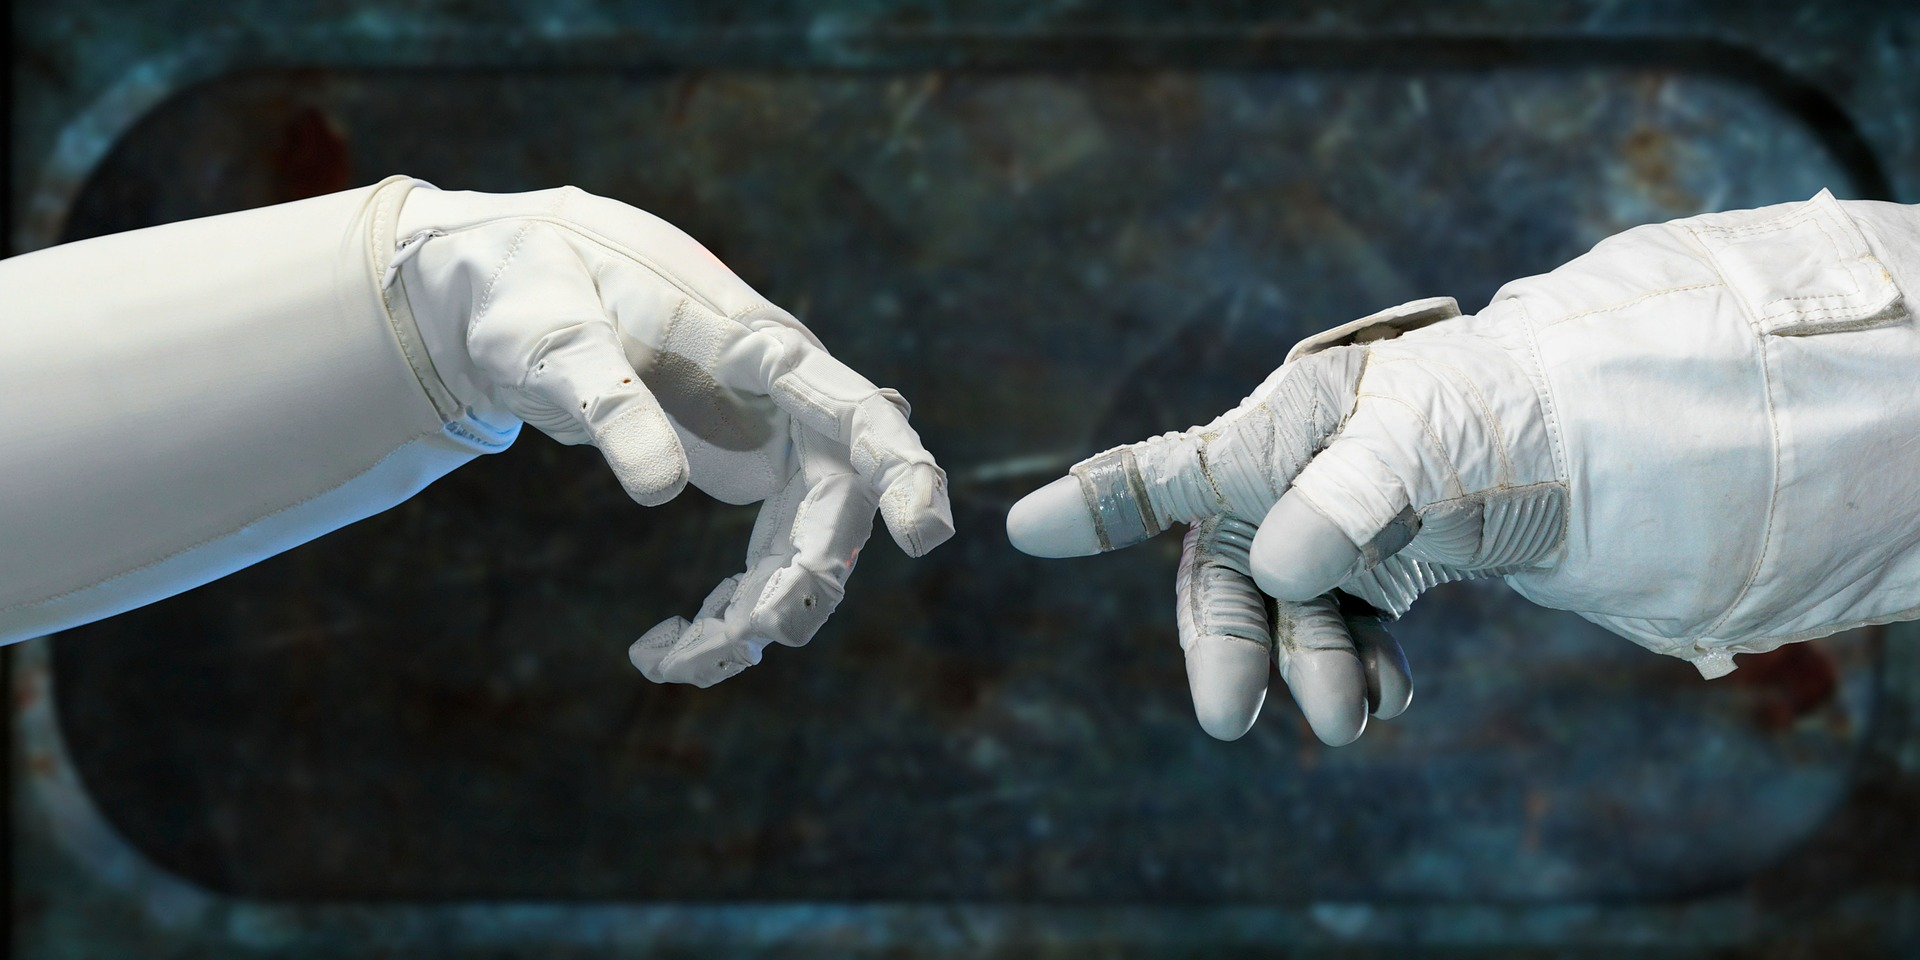 An image of a robot's finger touching an astronaut's finger in space